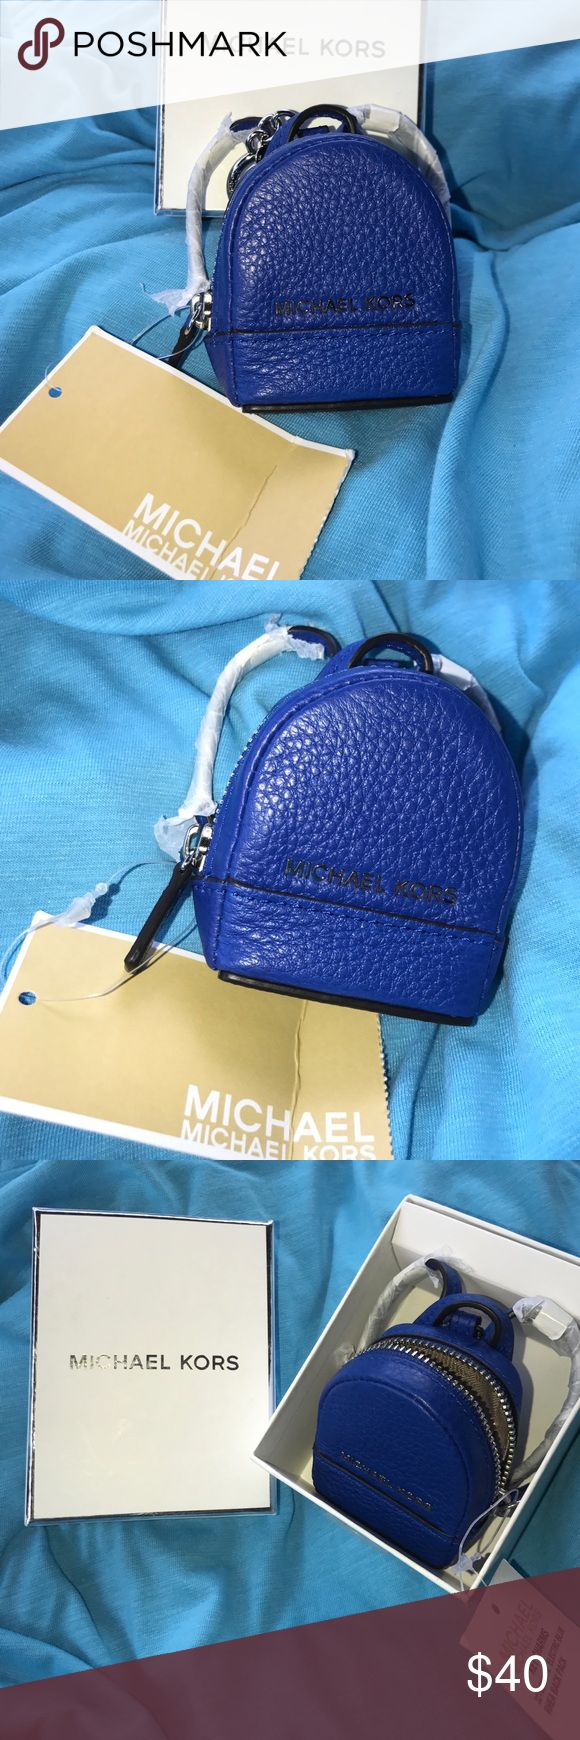 🔥MICHAEL KORS back pack key chain, NWT coin purse 💖NWT brand new MICHAEL KORS very pretty blue keychain backpack, coin purse or other small items, very nice, IT IS AUTHENTIC, box isn't included but it will be wrapped very nicely💖🐱🚬🏡💖make offers through the make offer feature, I will be happy to answer any questions💖and I am accepting reasonable offers 💖 Michael Kors Bags Mini Bags